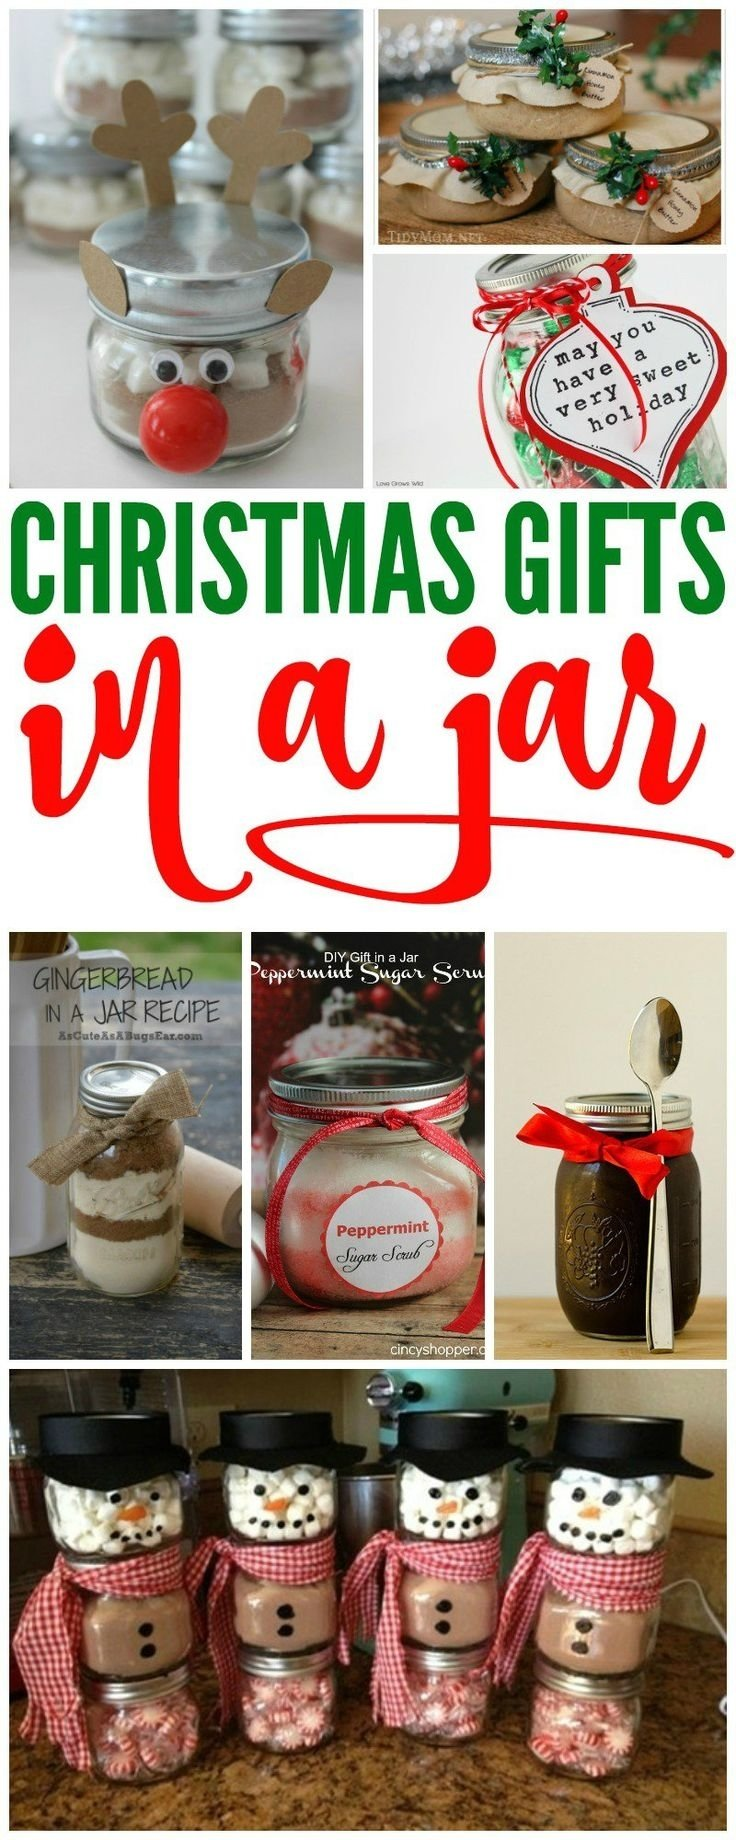 10 Beautiful Homemade Christmas Gift Ideas For Friends 1034 best diy gift ideas images on pinterest hand made gifts 7 2020